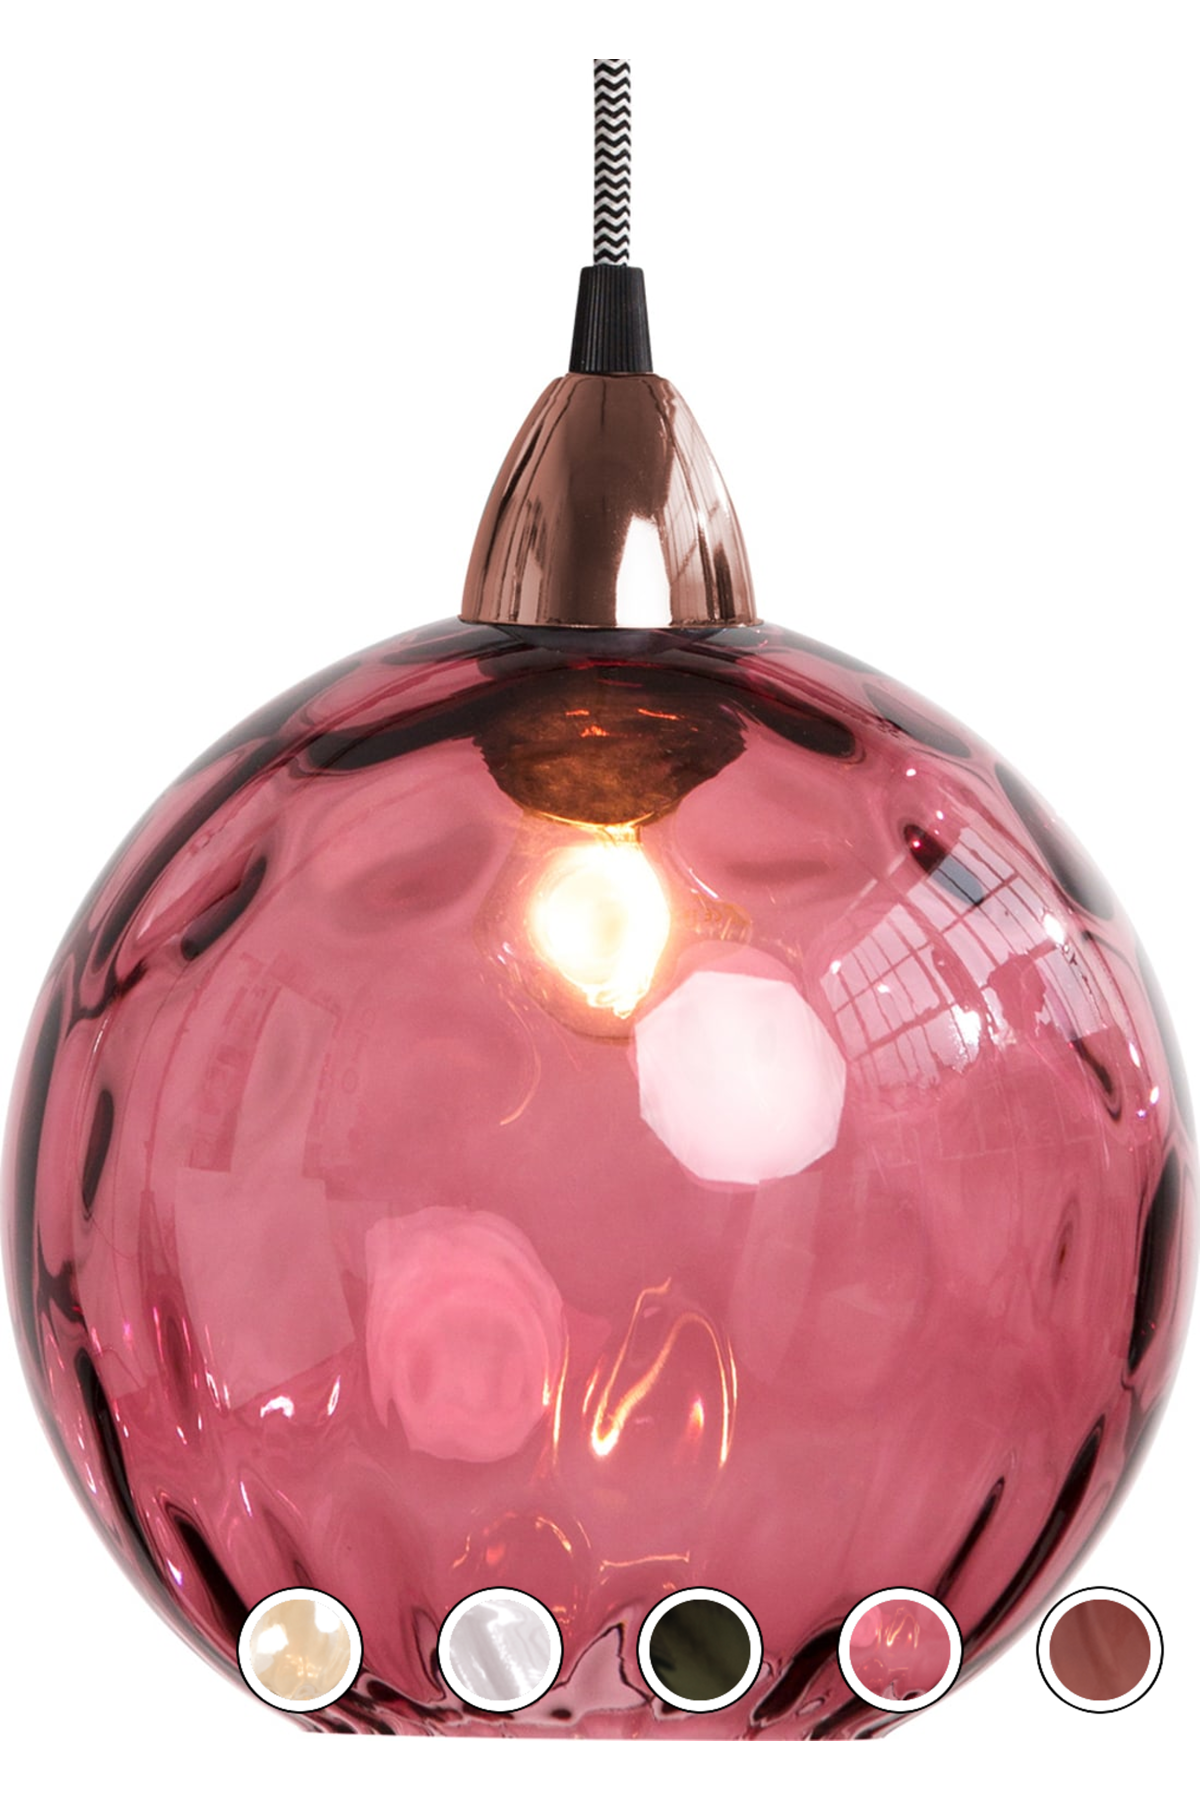 Made Pendant Shade Berry Red Express Delivery Glass Ilaria